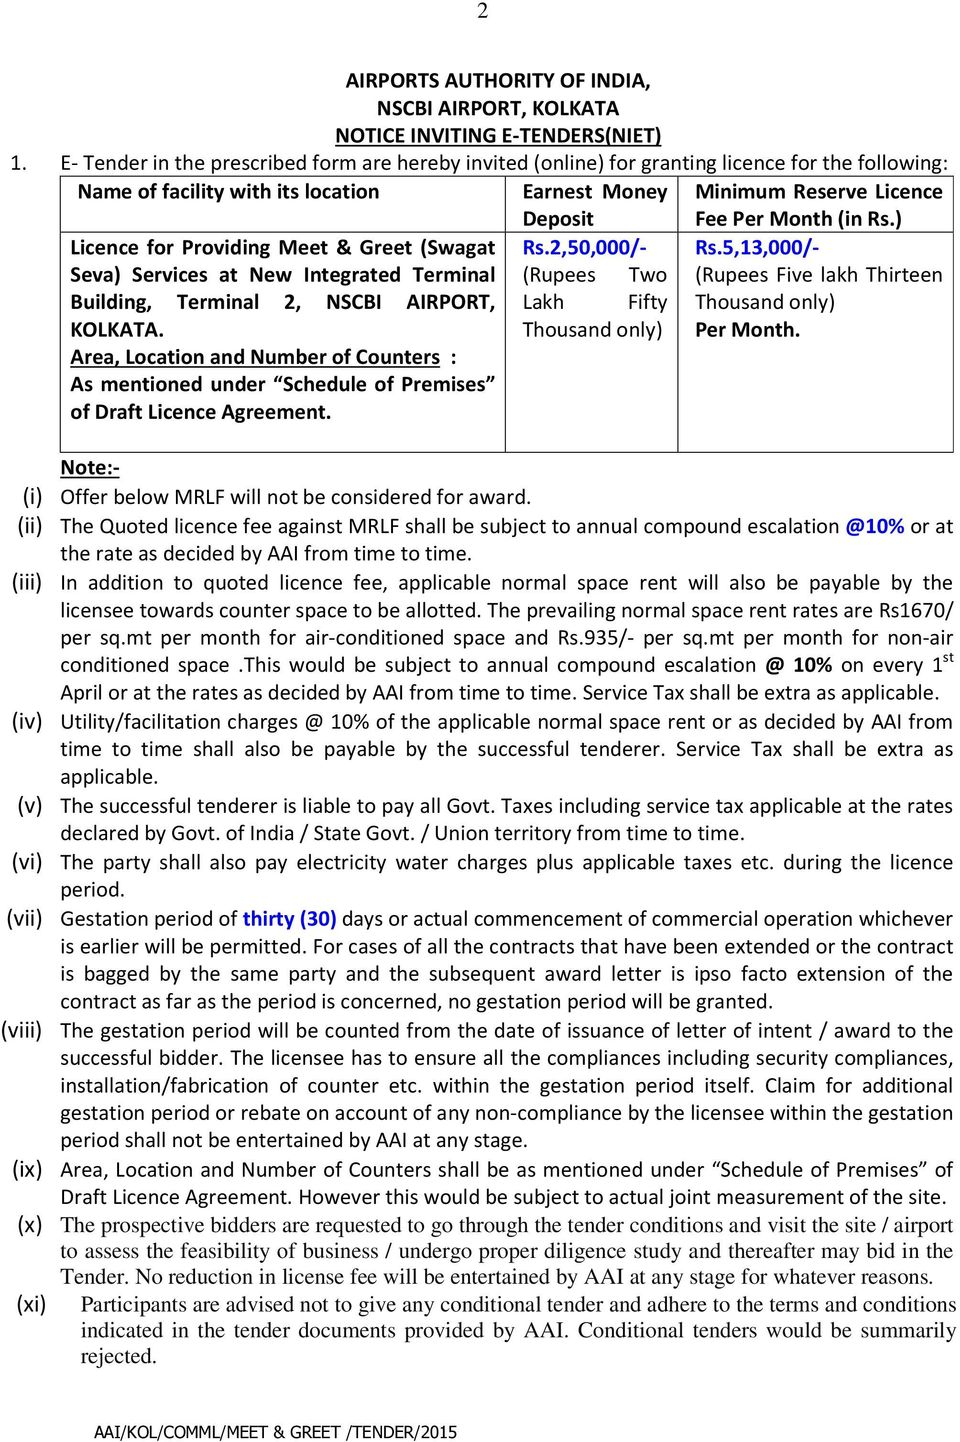 E tender for licence for providing meet greet swagat seva meet greet swagat seva services at new integrated terminal building terminal 2 m4hsunfo